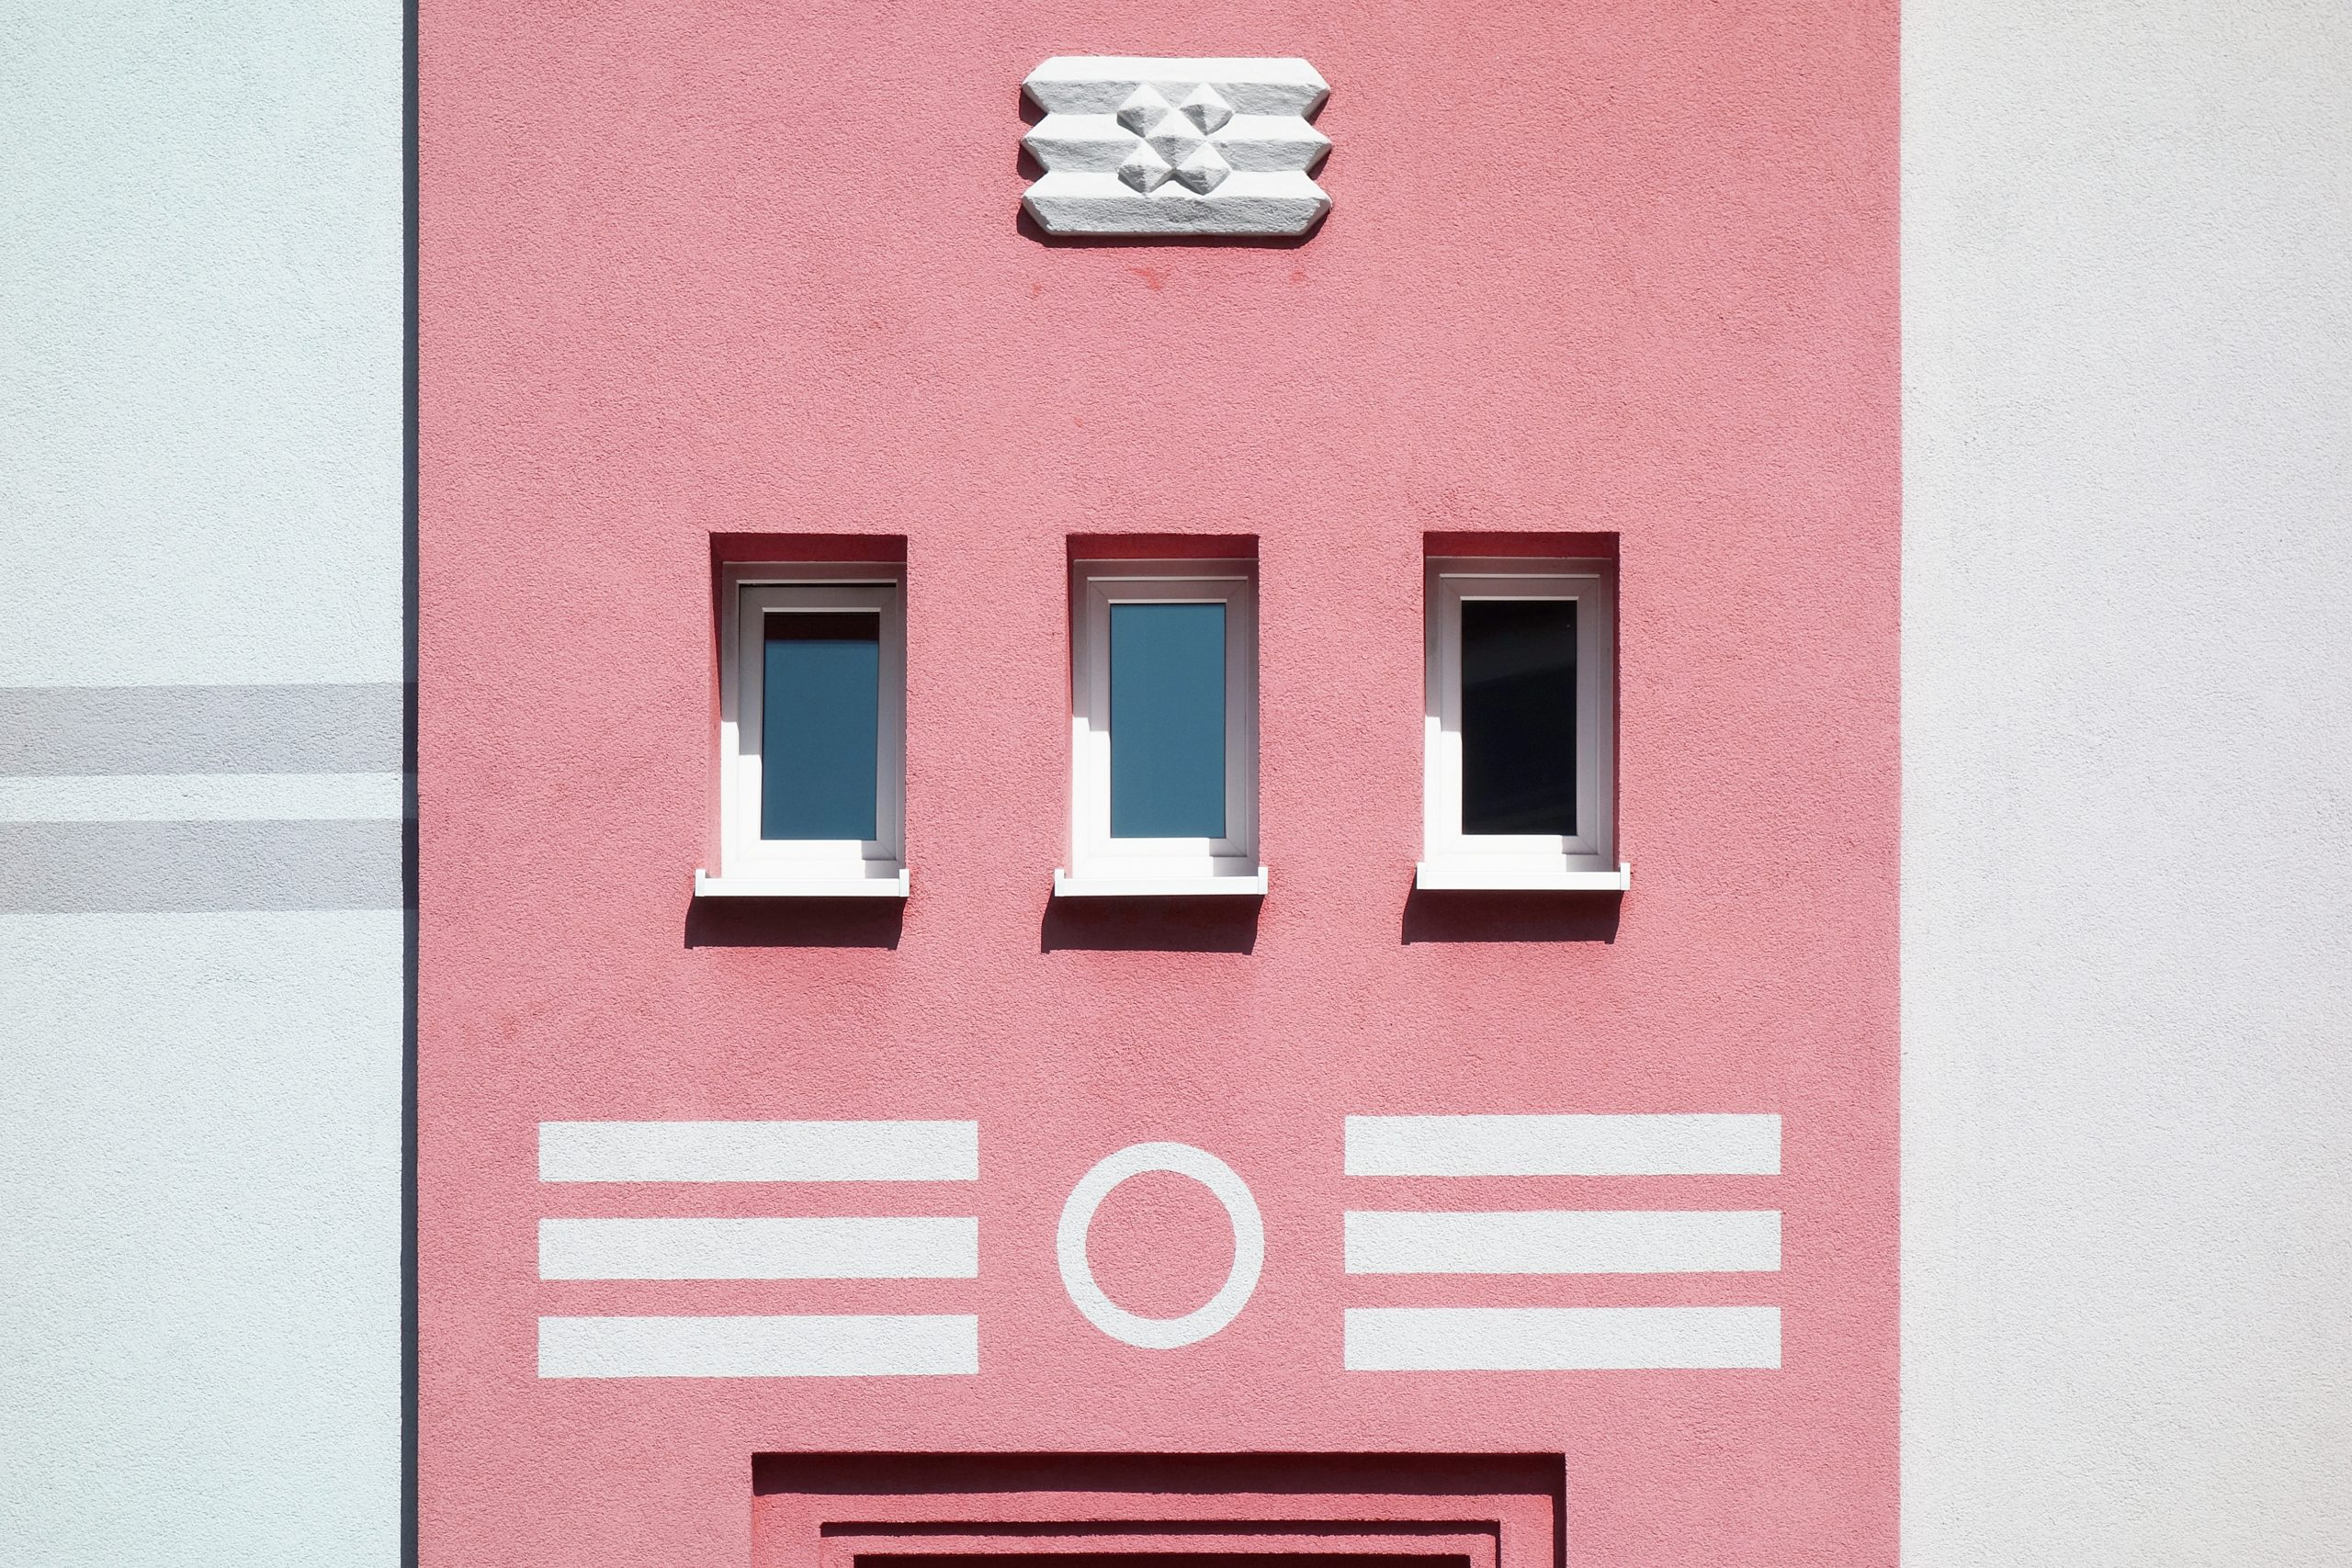 Pink building with white stripes